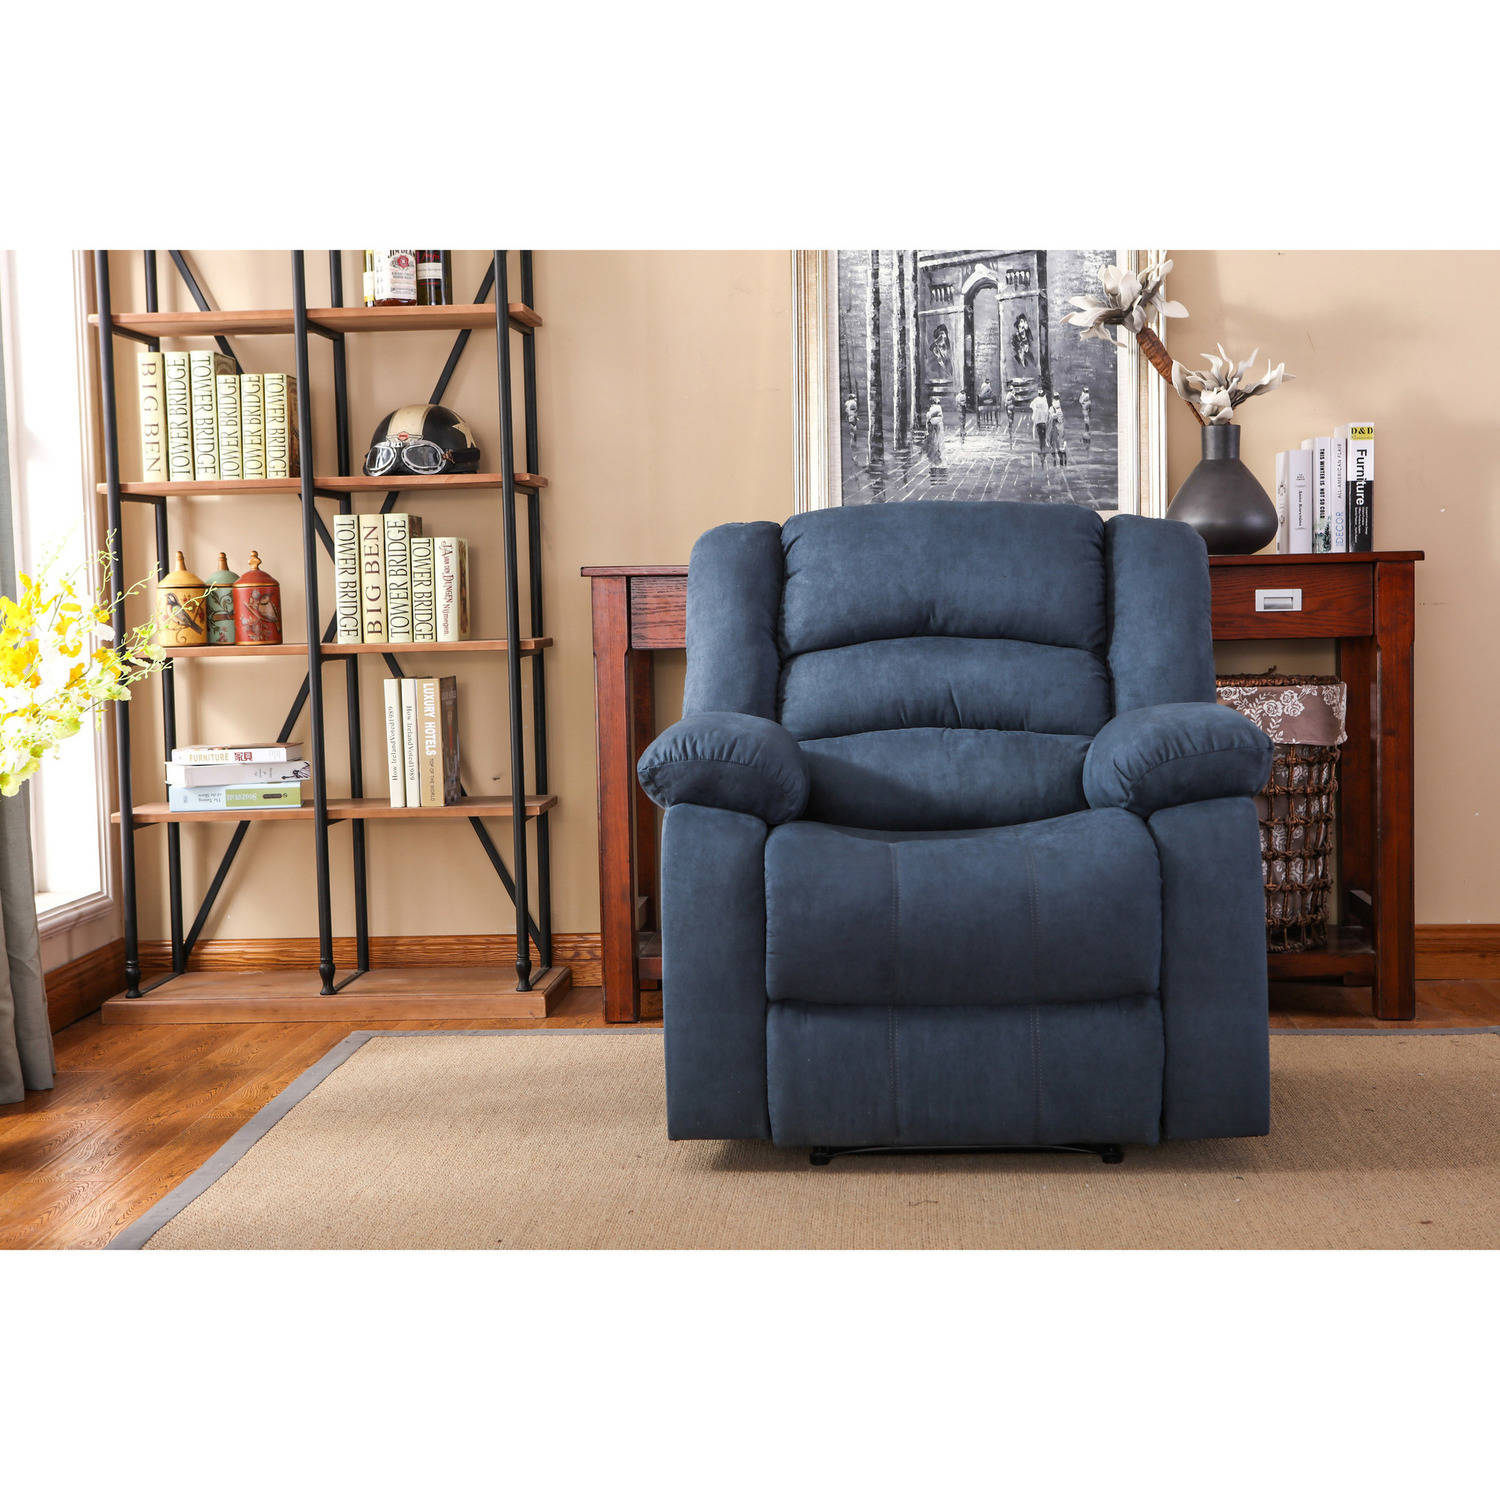 Nathaniel Home Addison Recliner, Blue